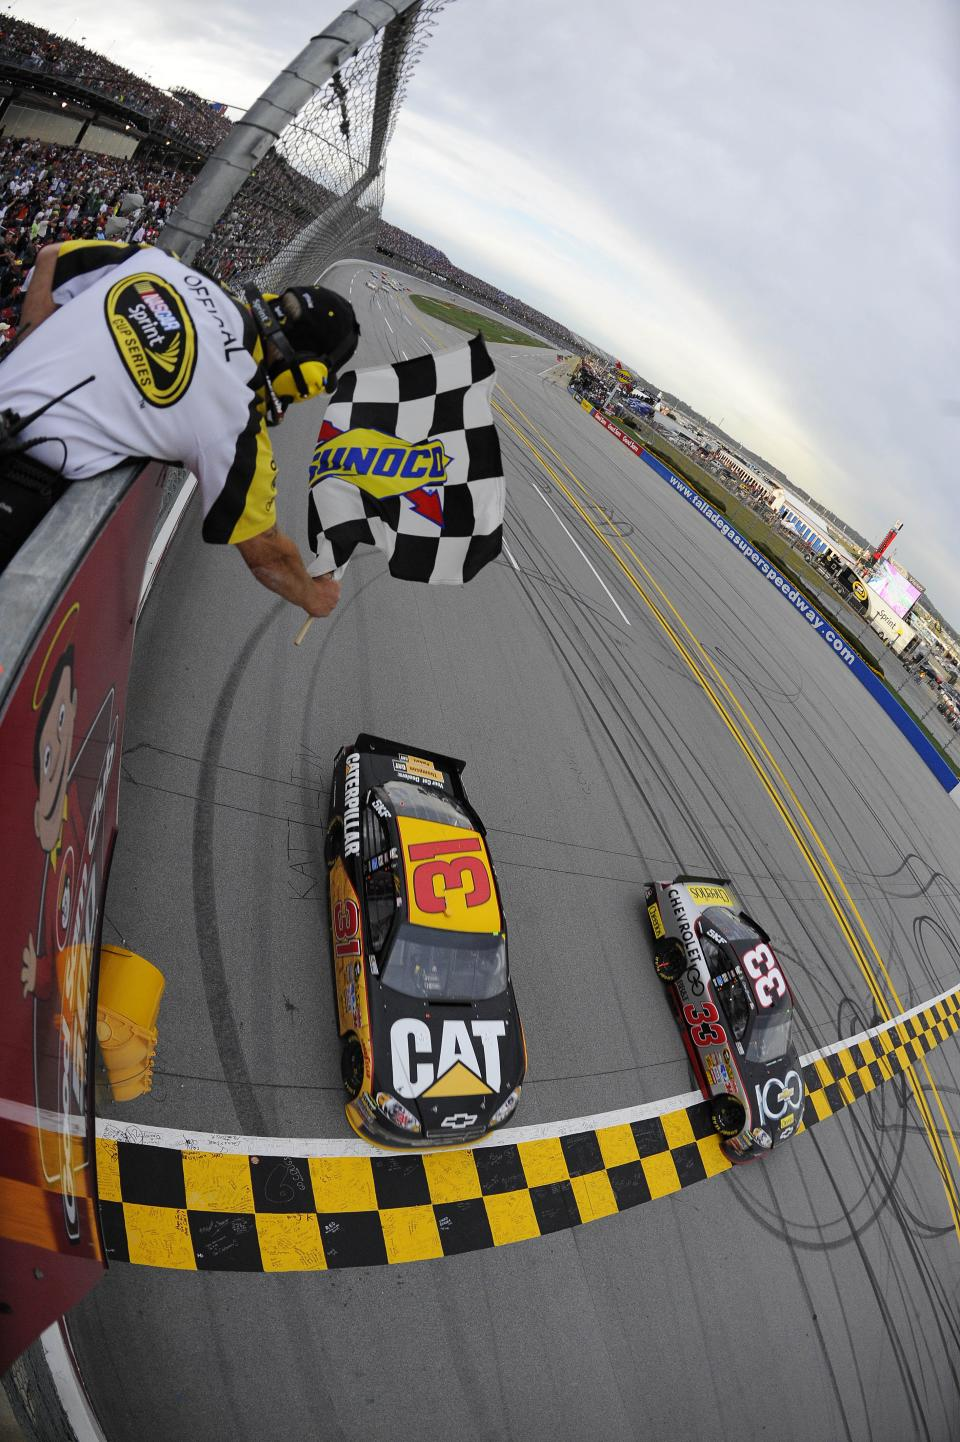 Clint Bowyer (33) crosses the finish line ahead of Jeff Burton (31) to win the NASCAR Sprint Cup Series auto race at Talladega Superspeedway on Sunday, Oct. 23, 2011, in Talladega, Ala. (AP Photo/Jason Smith, Pool)